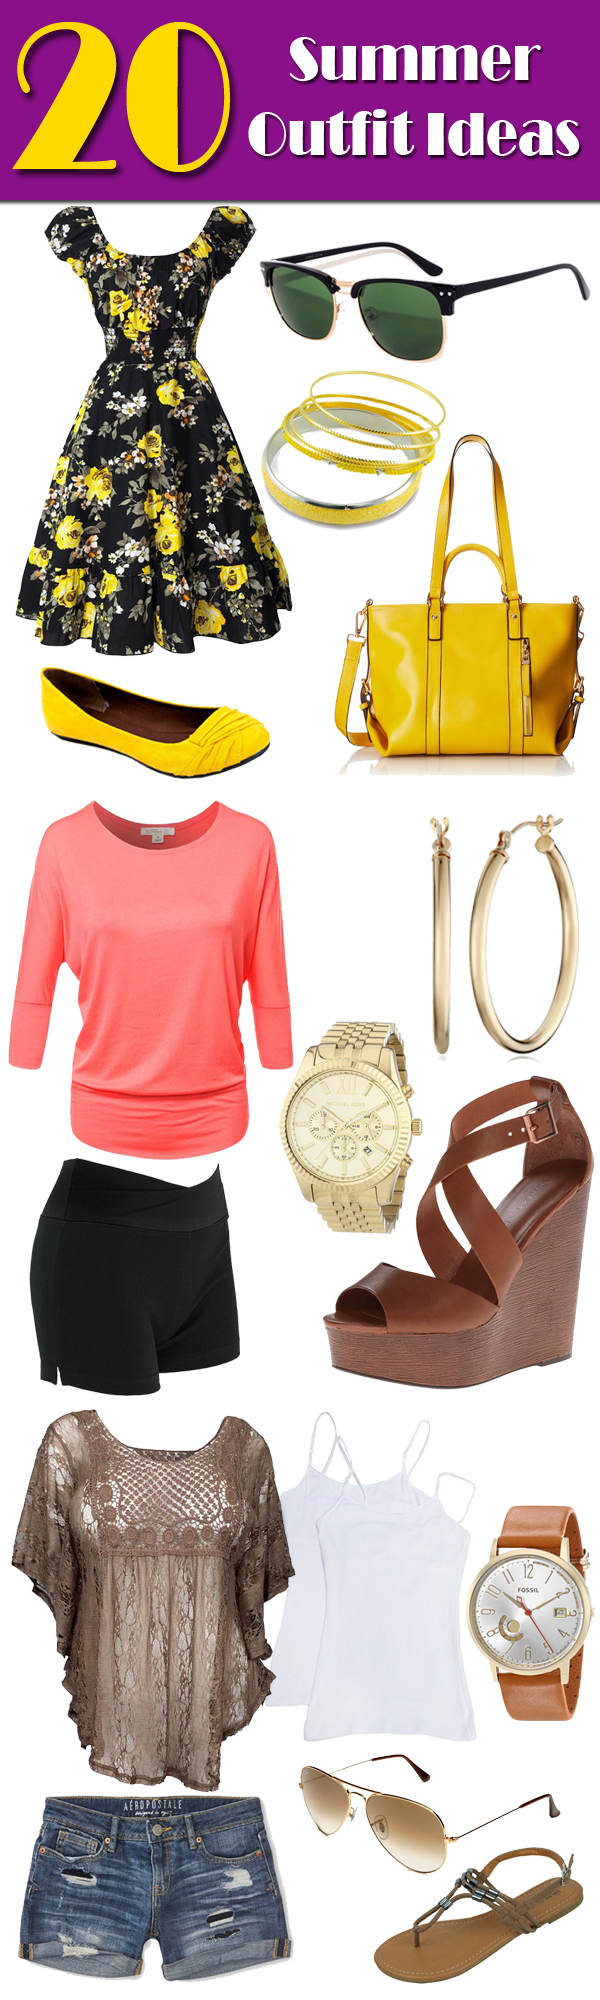 Summer Fashion 2017 - 20 Outfits to Wear This Summer